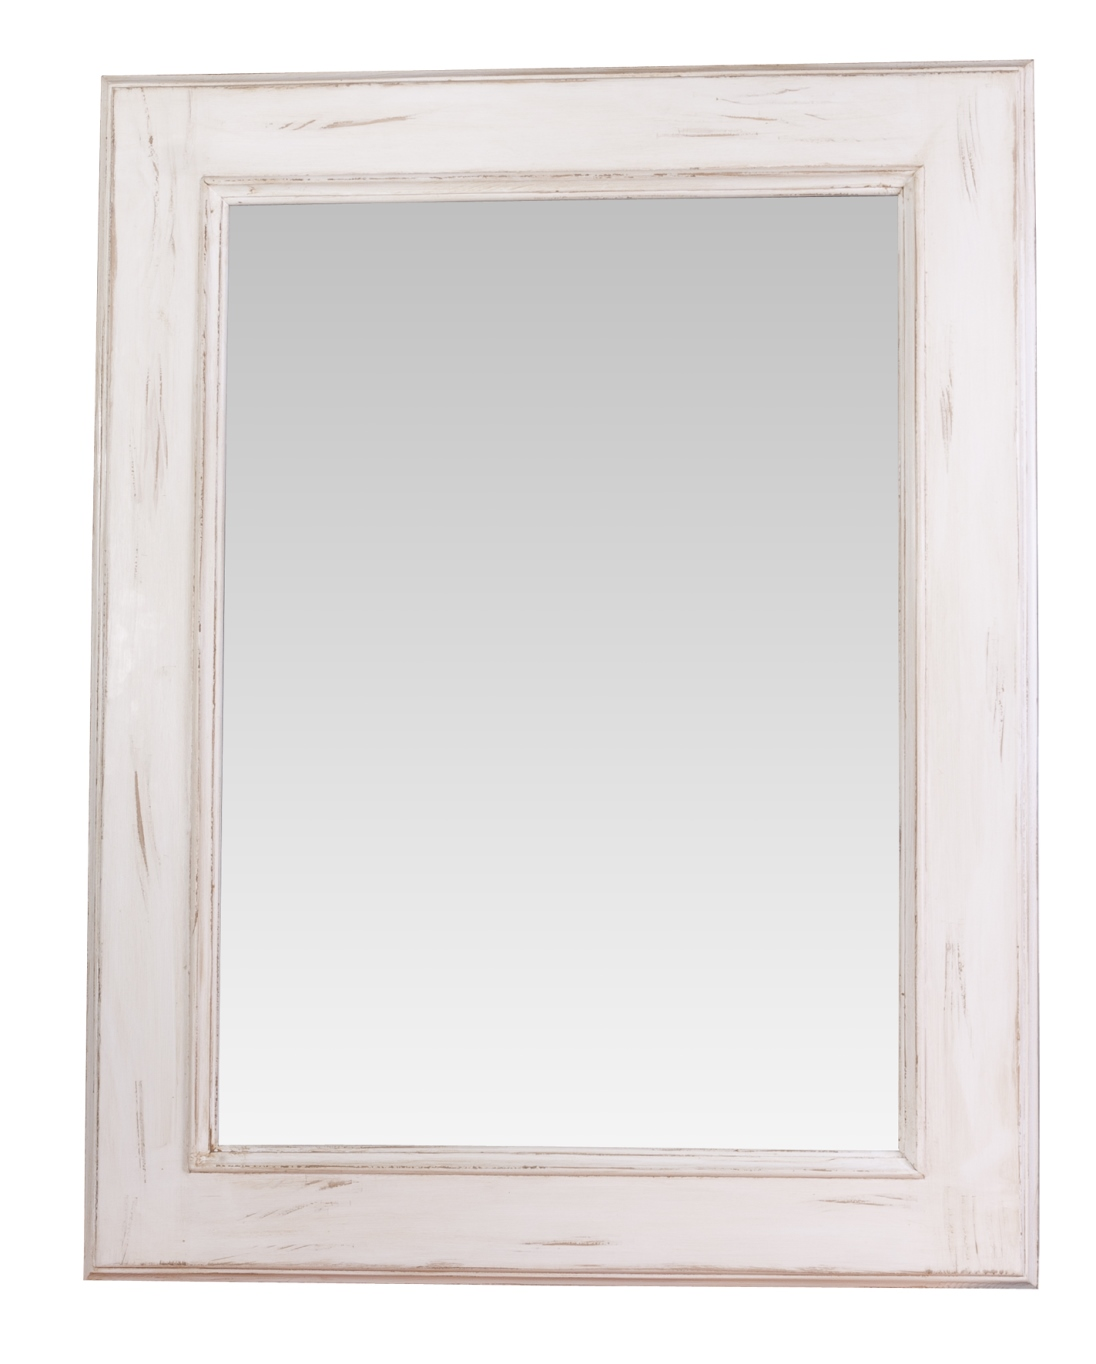 HERITAGE FRENCH LINE MIRROR  w 78 x d 3 x h 100 cm  € 265 ( 30% Off, Now € 185.50 )  Product Code: FL-7008  This piece may be orderedin any of the Heritage colours and finishes.